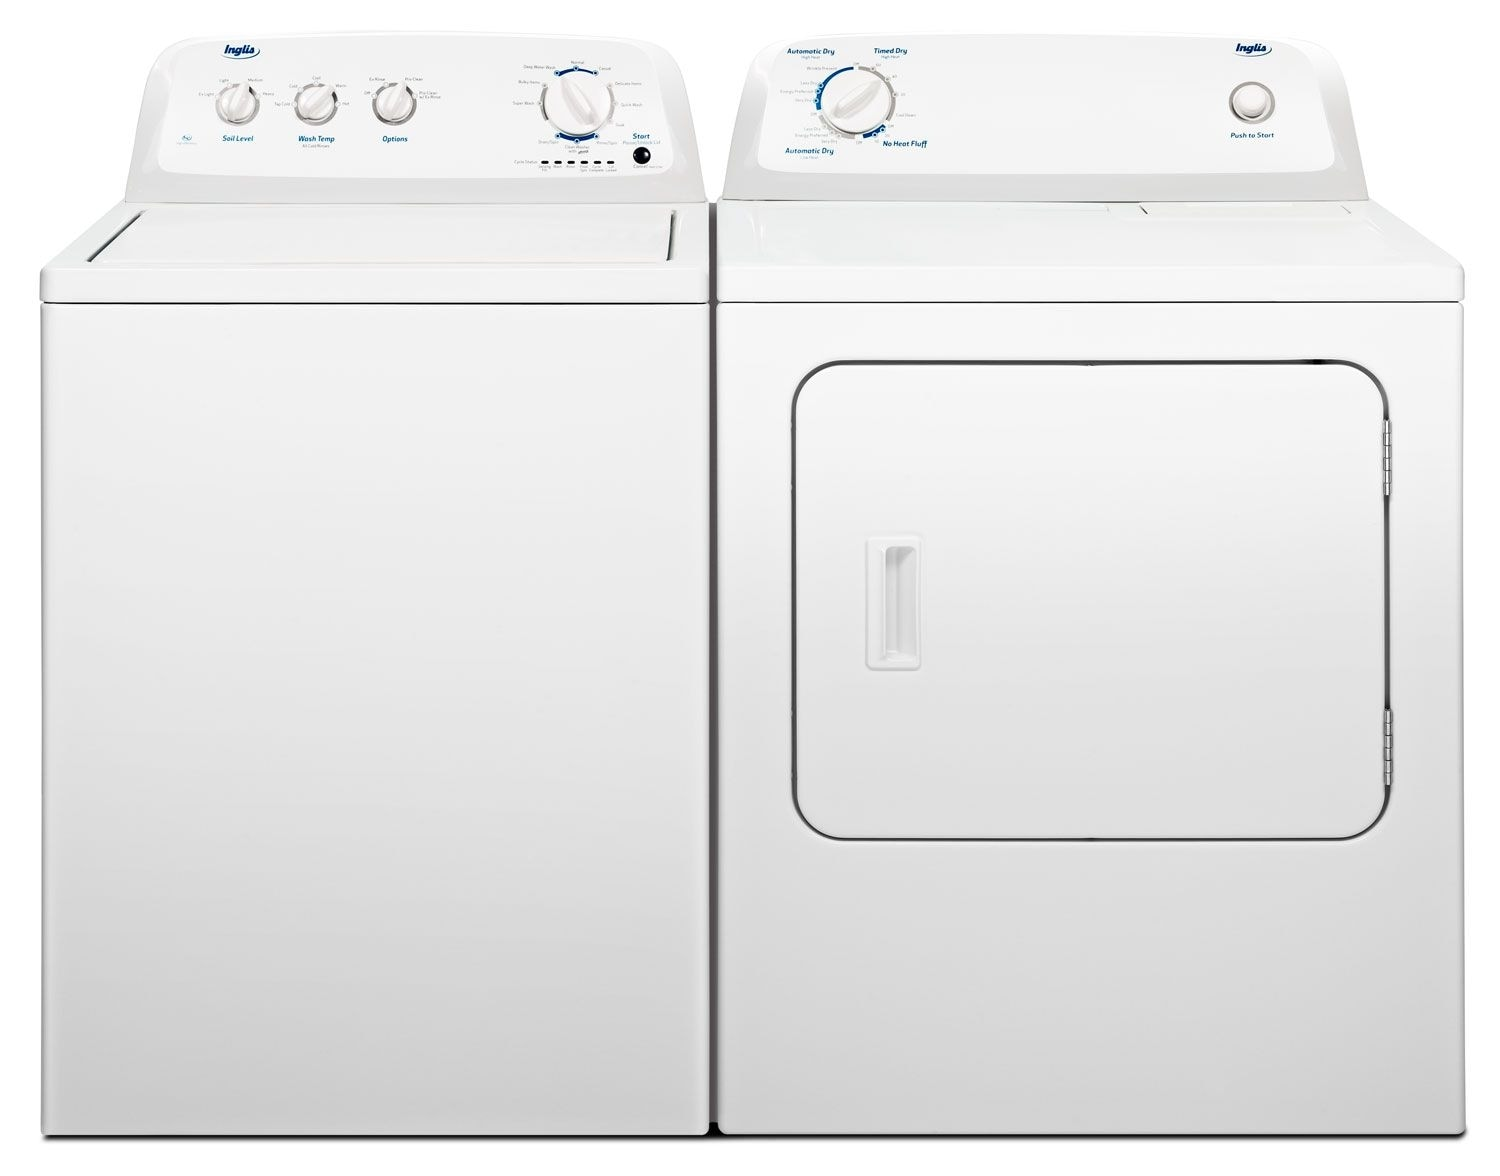 Washers and Dryers - Inglis 4.2 Cu. Ft. Washer and 6.5 Cu. Ft. Dryer